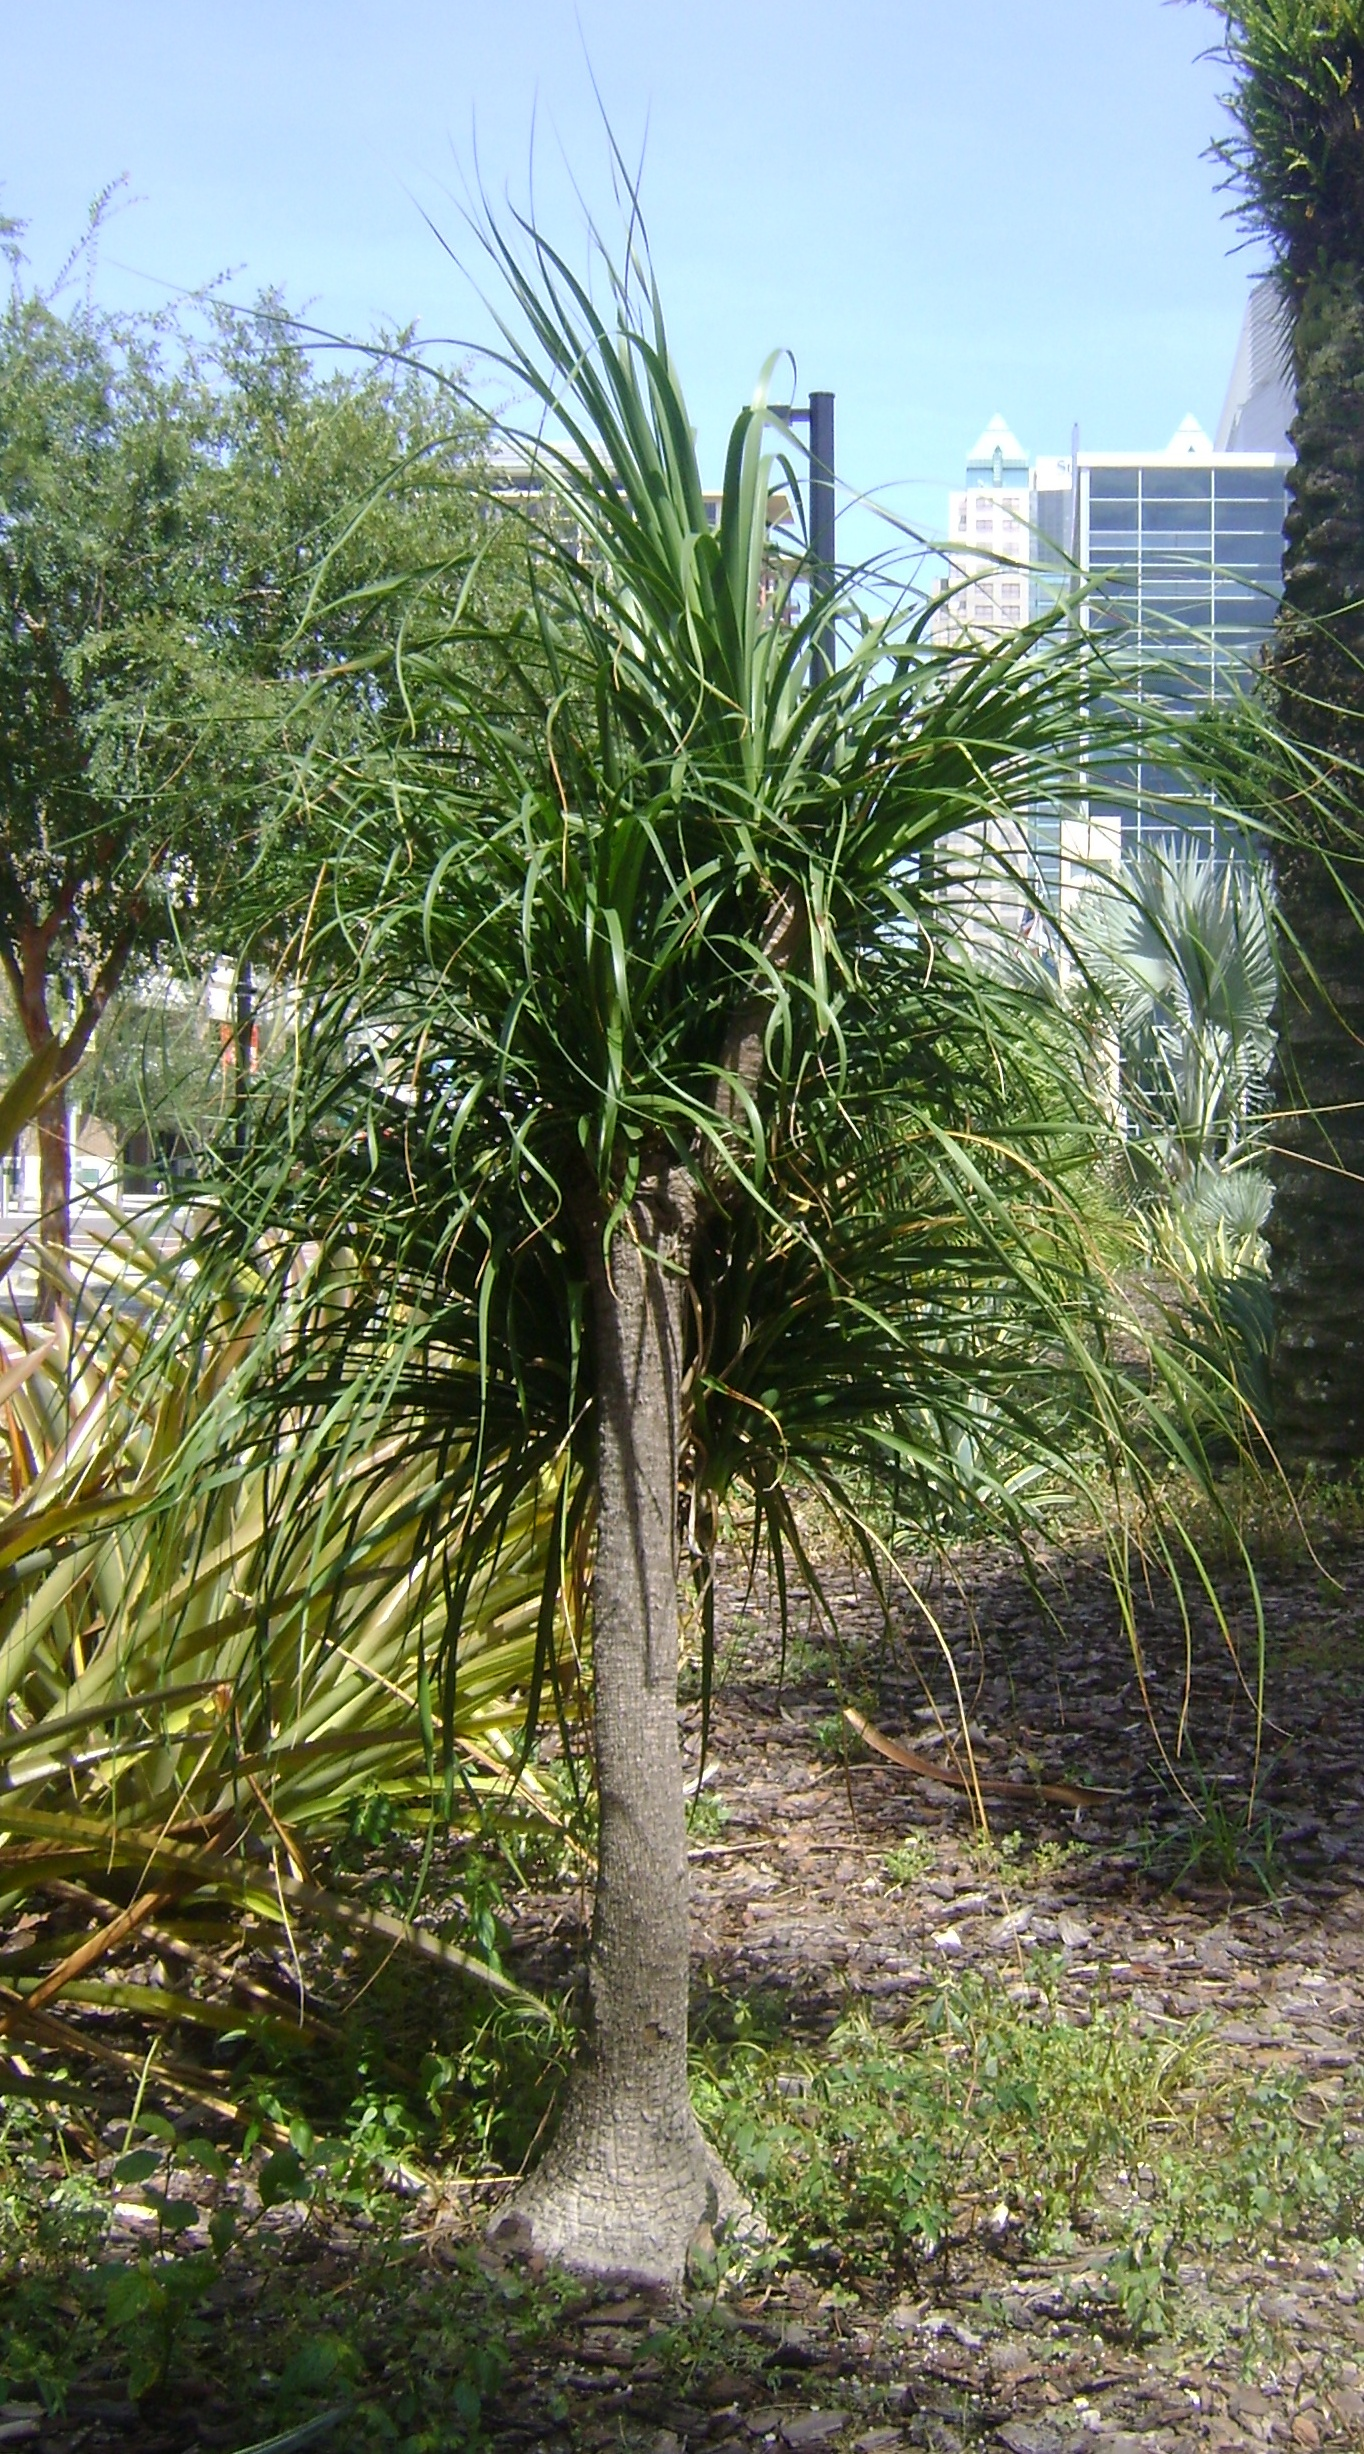 Buy Ponytail Palm Trees in Miami Ft Lauderdale Kendall